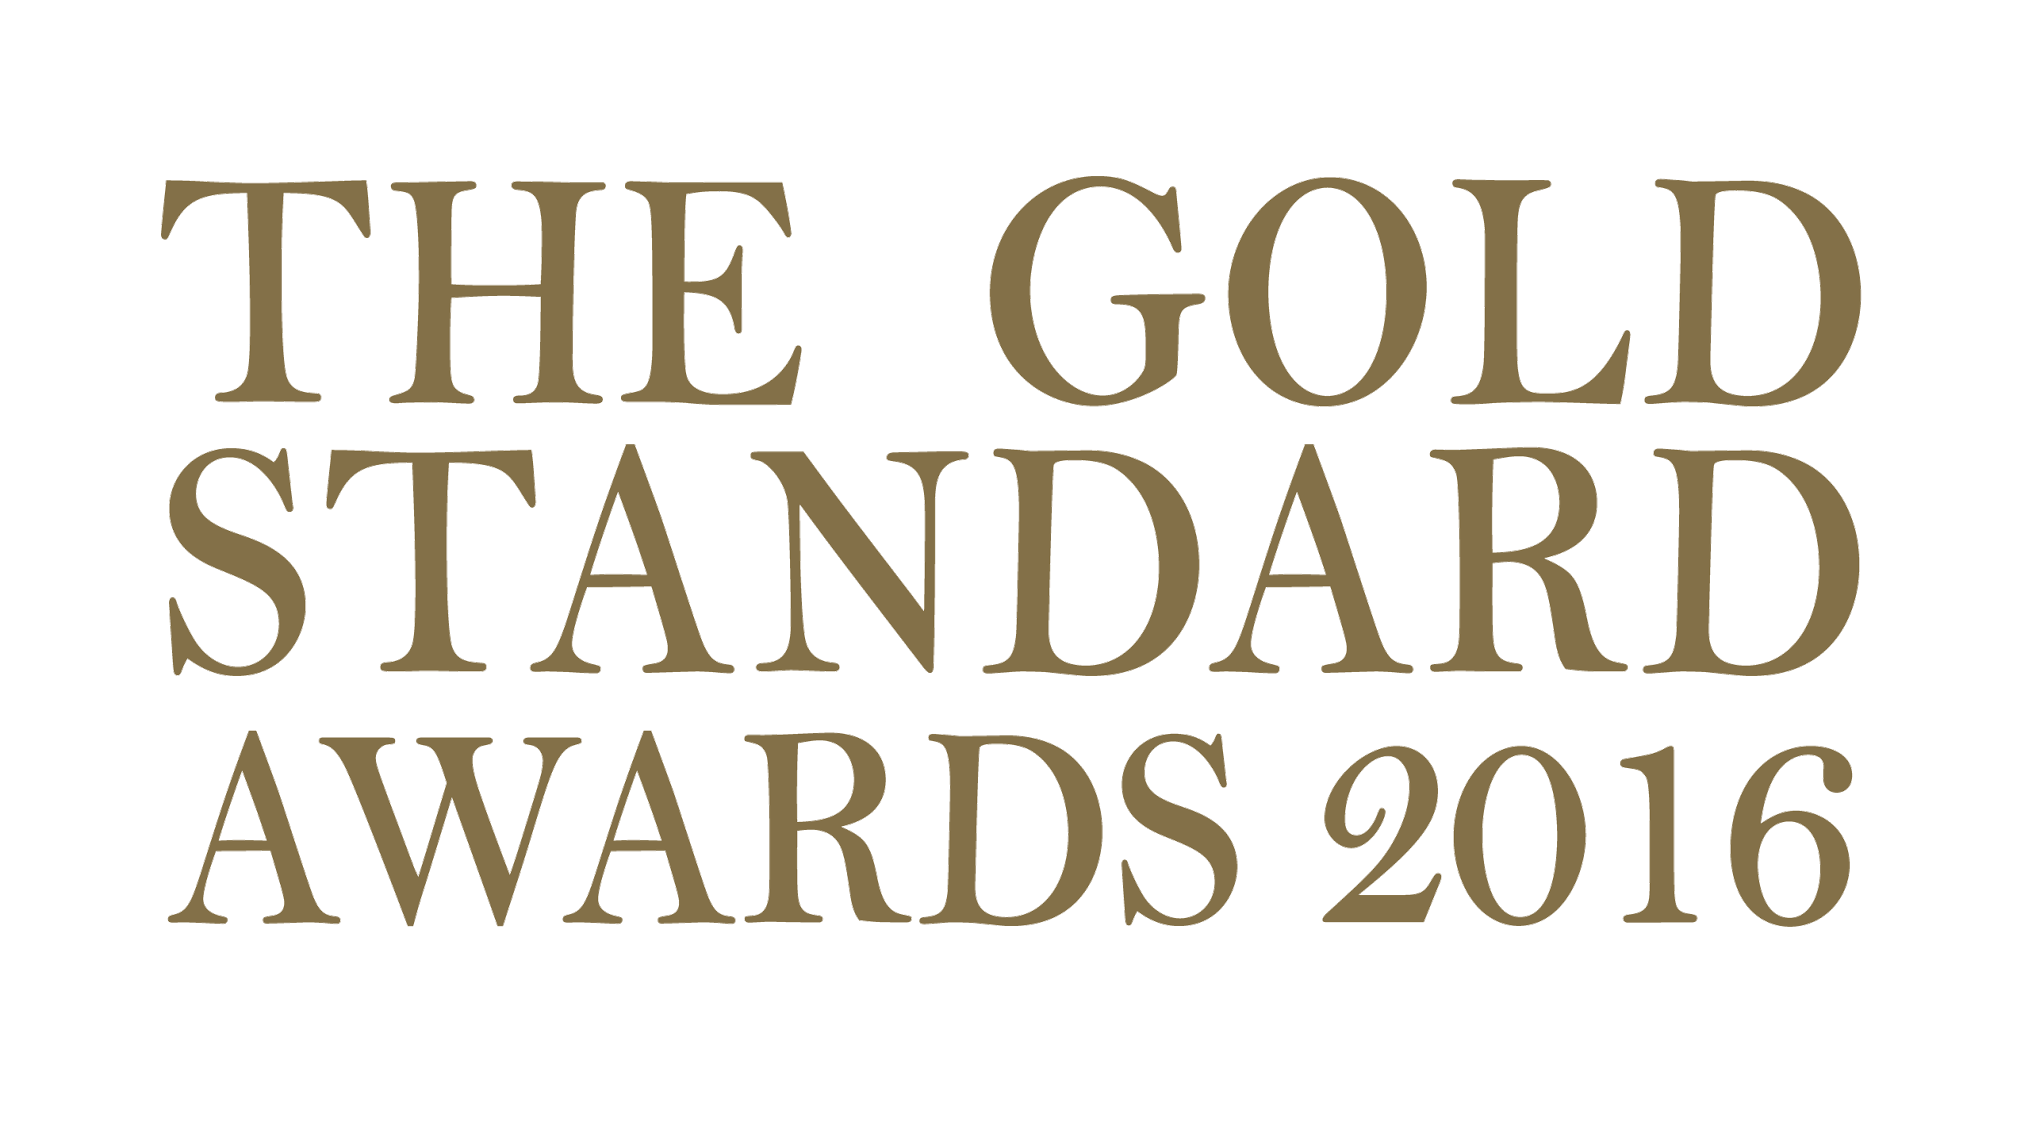 THE GOLD STANDARD AWARDS 2017